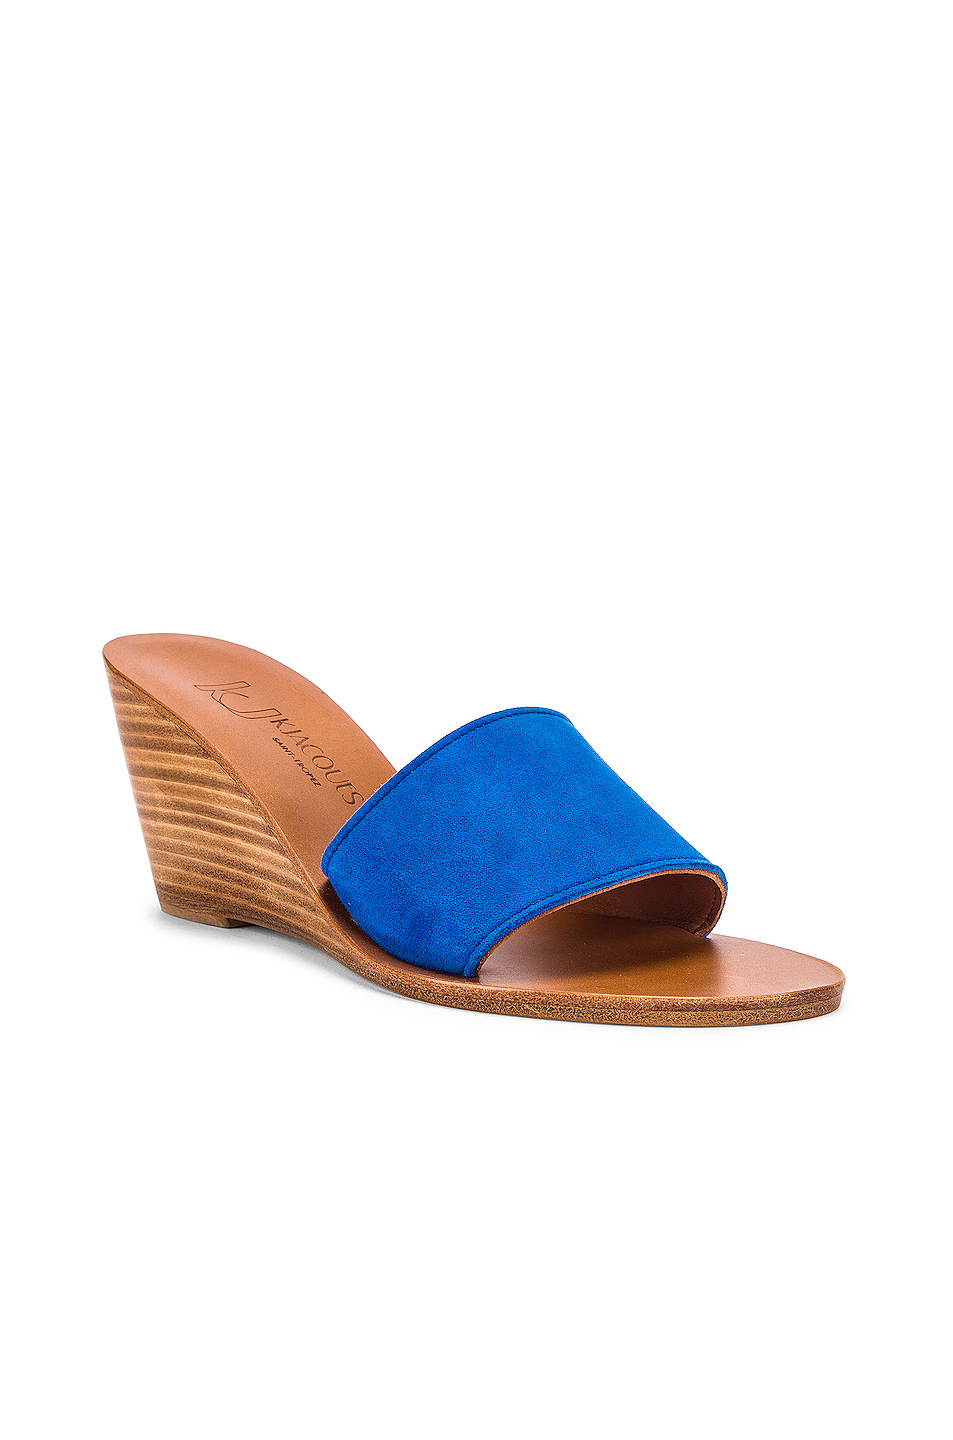 K Jacques Bianca Wedge